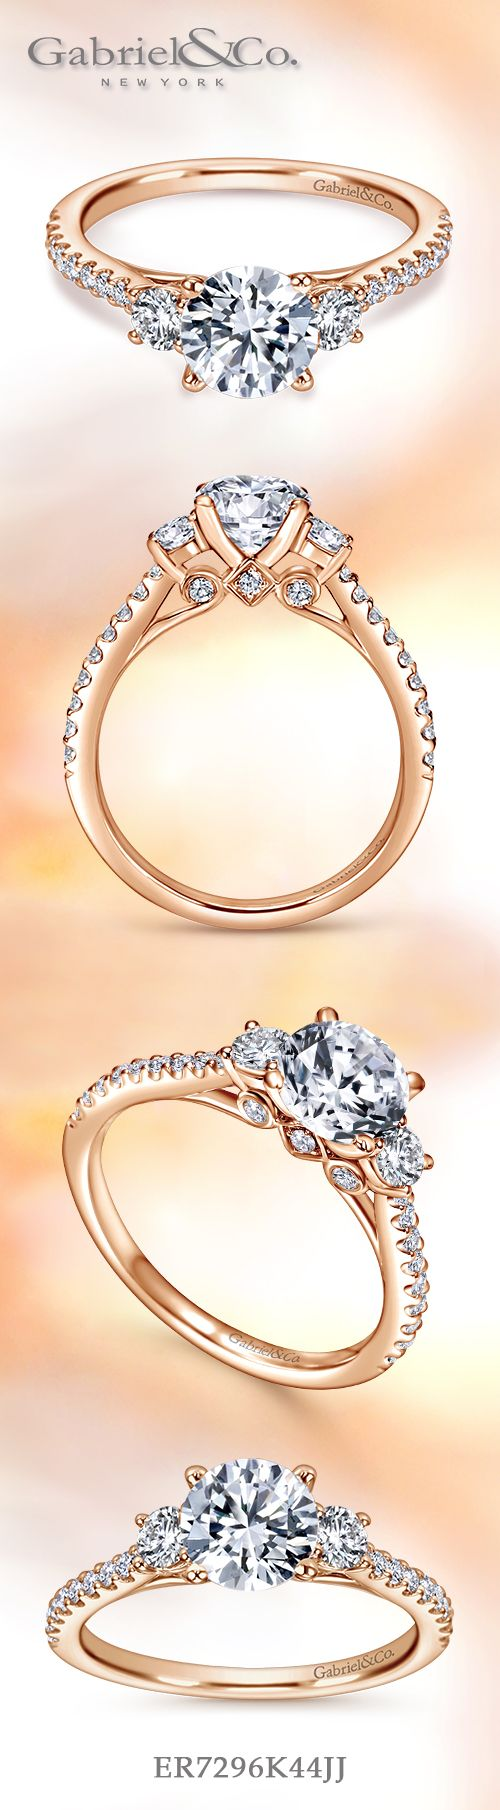 Halo Engagement Rings Are Very Classy, But They Need Not Be Expensive We  Reveal All The Classic Settings + Where To Get A Quality Ring For A Great  Price!